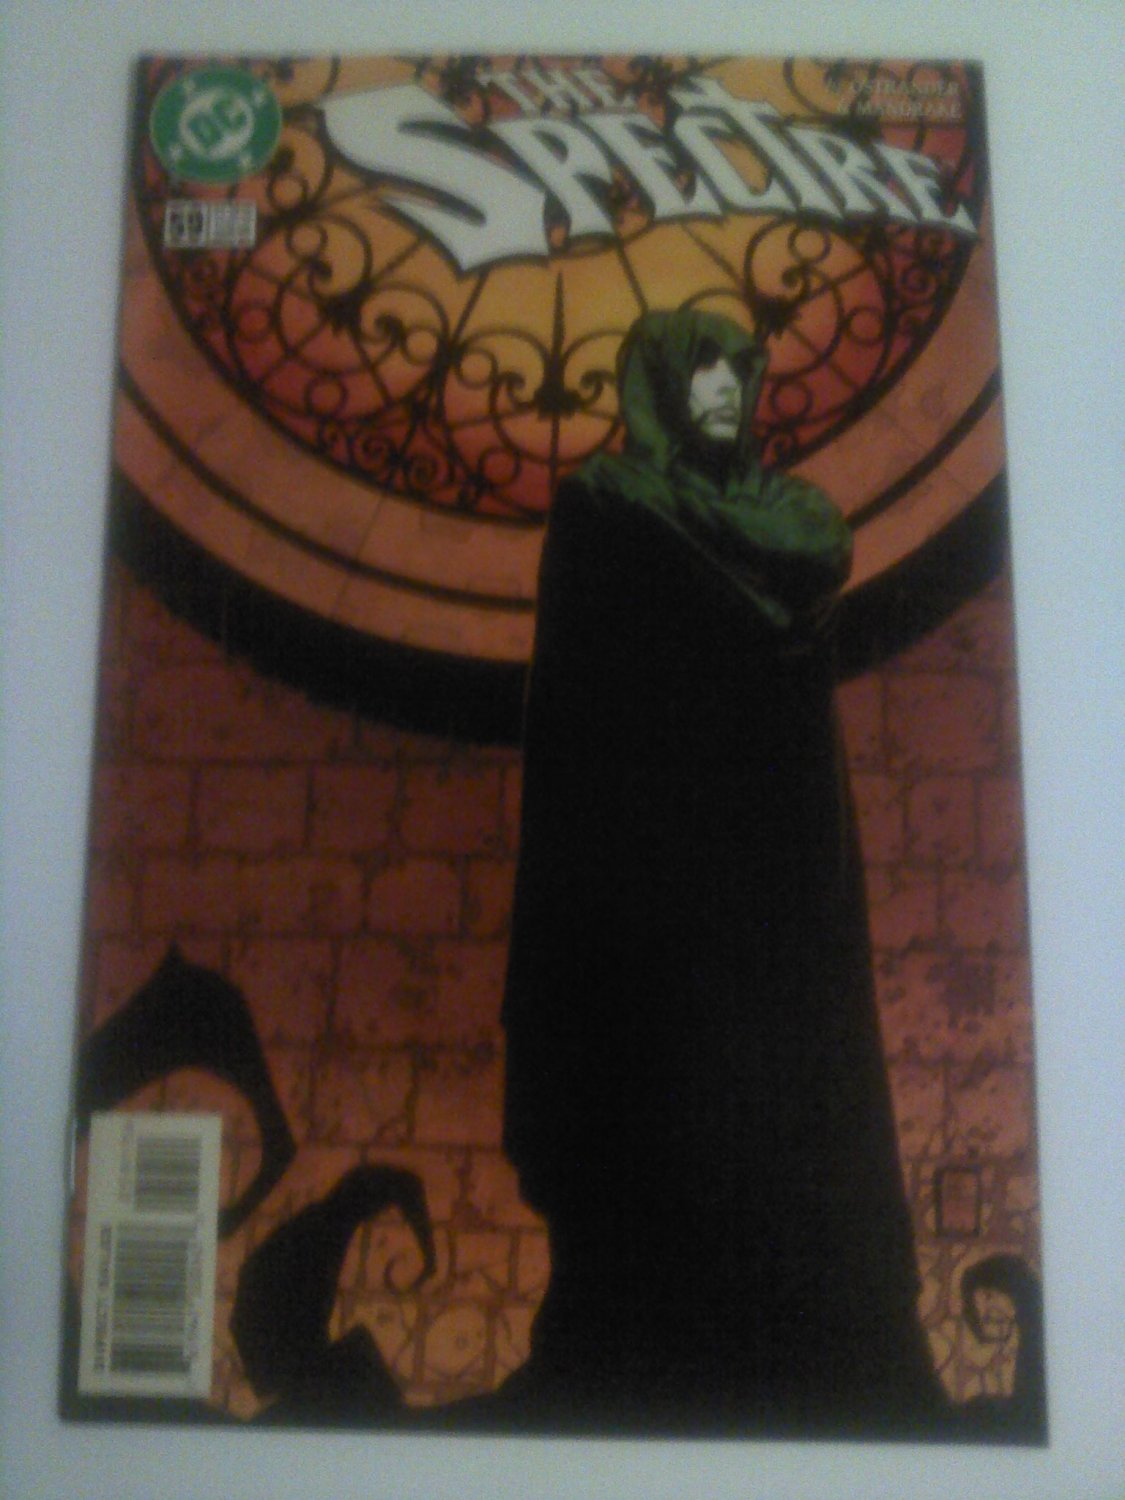 The Spectre Vol.3 #59 John Ostrander/Tom Mandrake